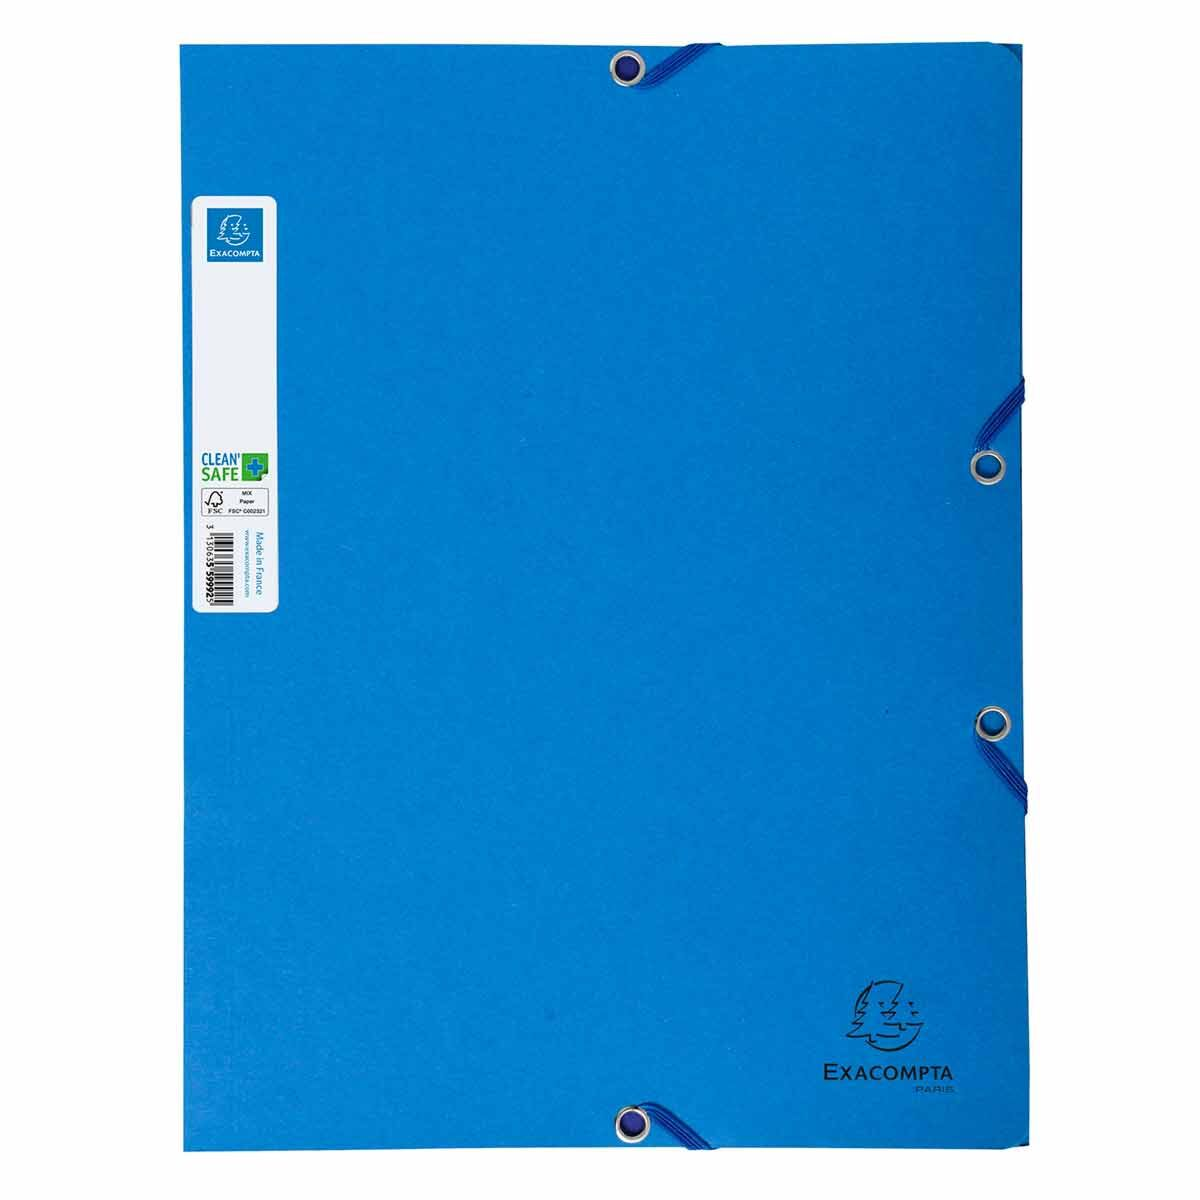 Exacompta Clean Safe A4 Elasticated 3 Flap Folders 400gsm Pack of 5